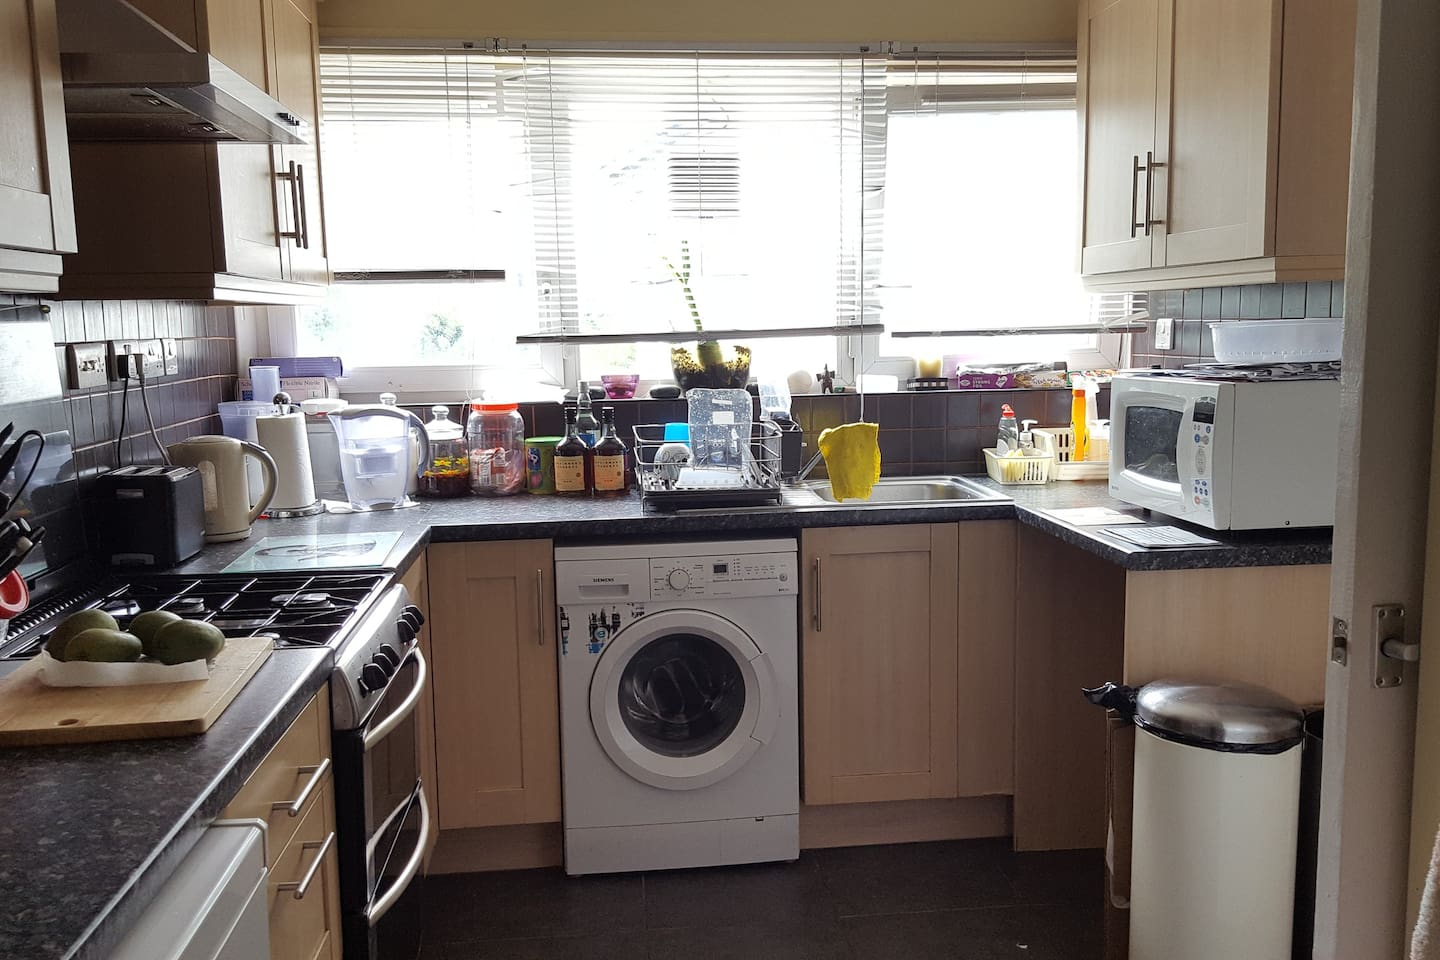 Kitchen- everything available to use, microwave, kettle, toaster, cooker with oven and washing machine.